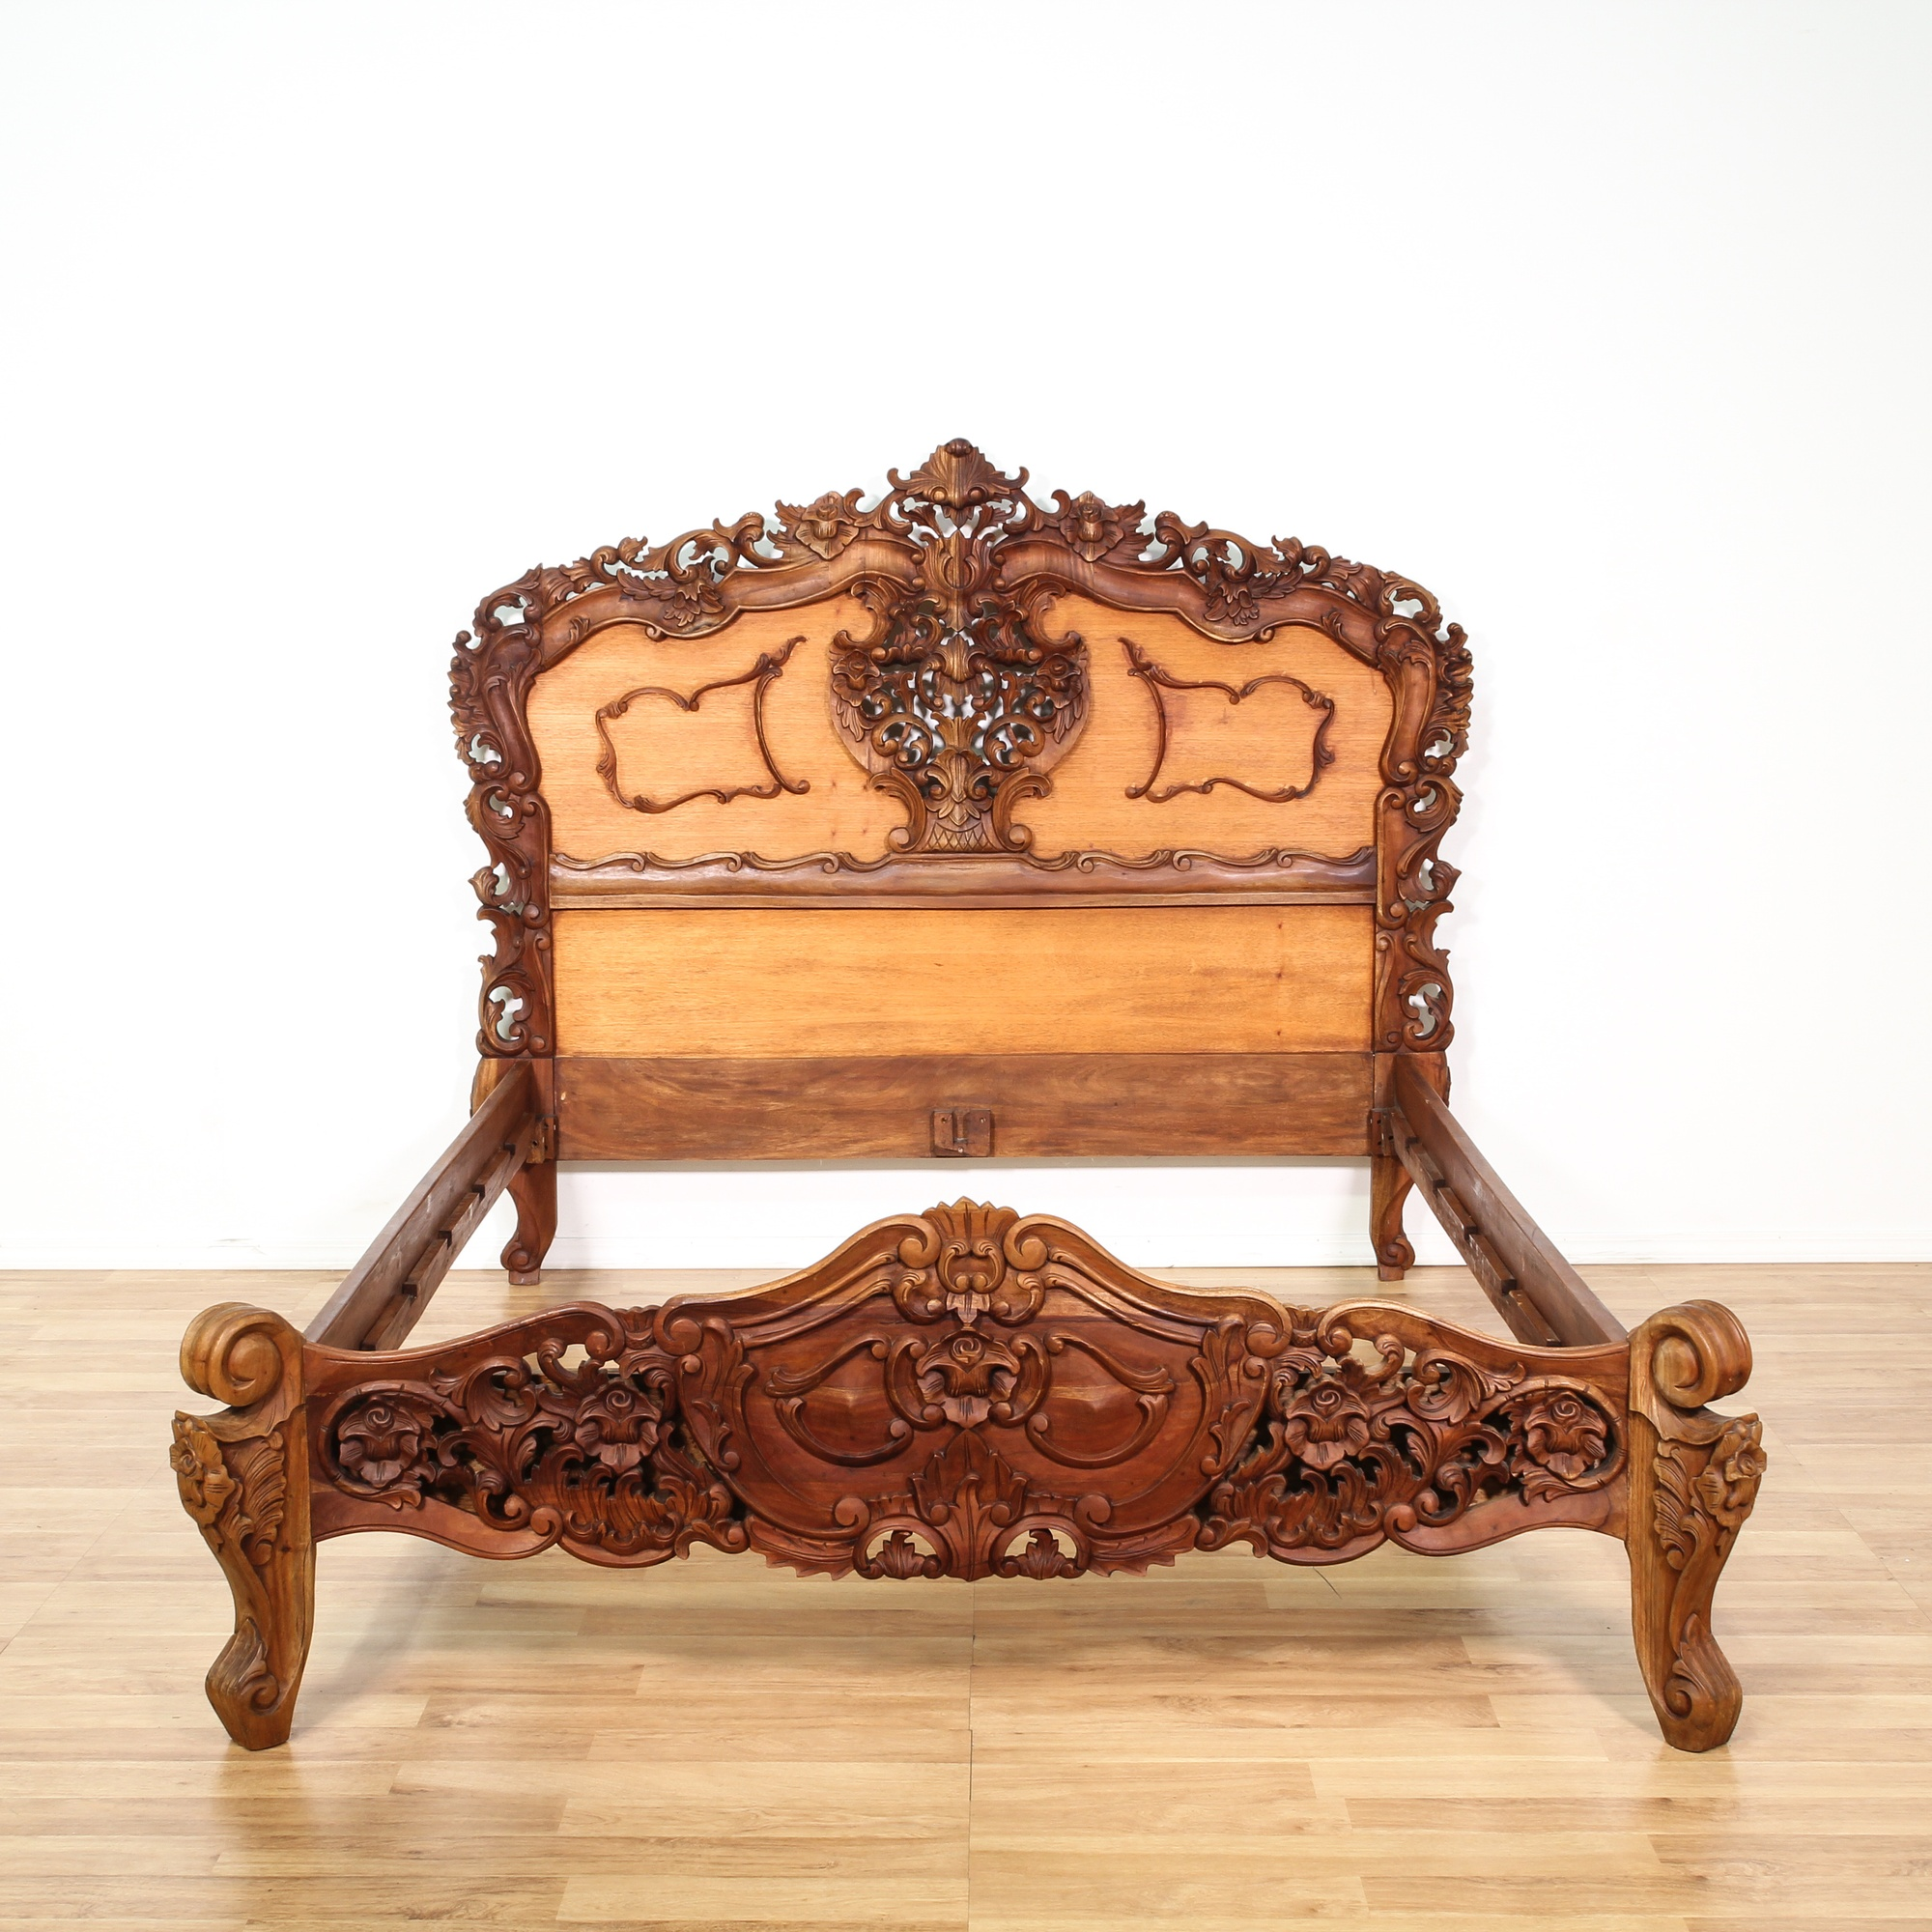 Rococo baroque carved mahogany bed frame loveseat